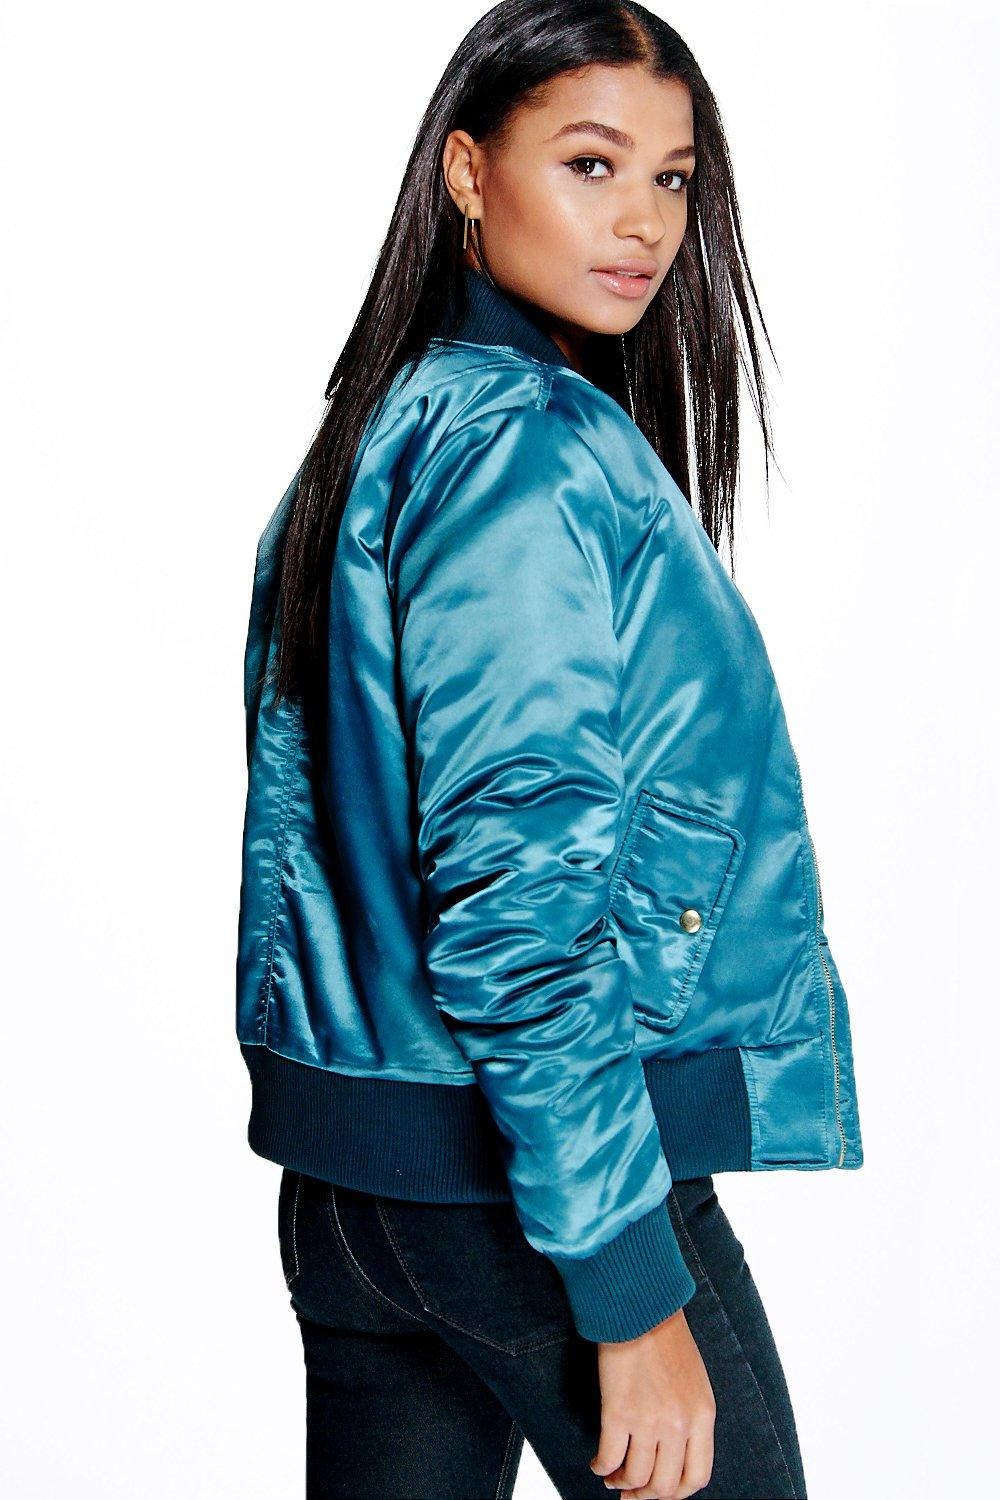 What Is A Bomber Jacket